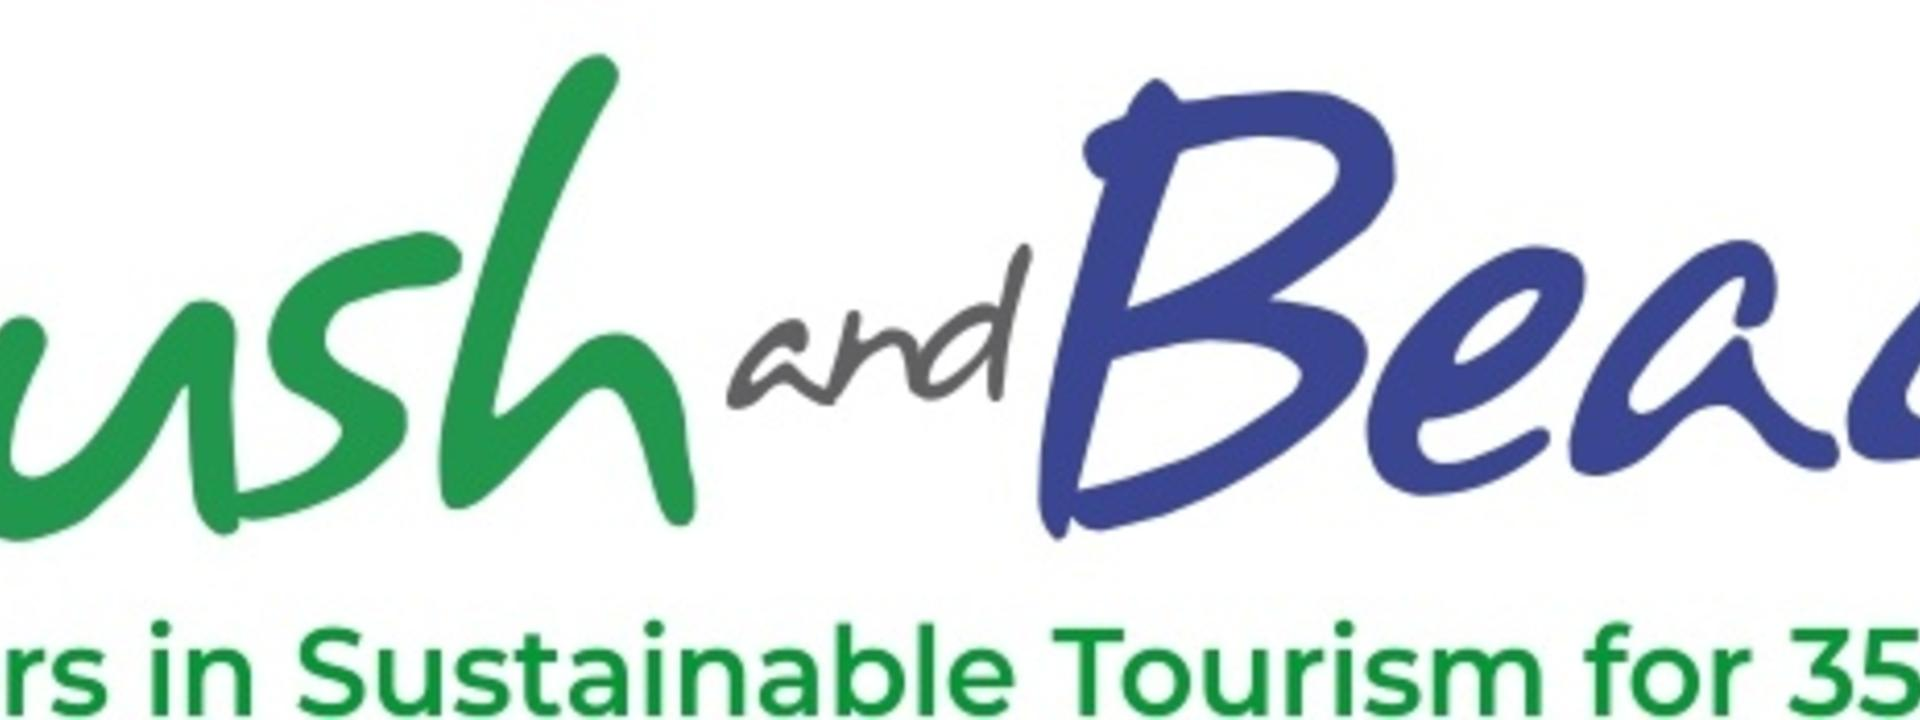 Logo: Bush and Beach